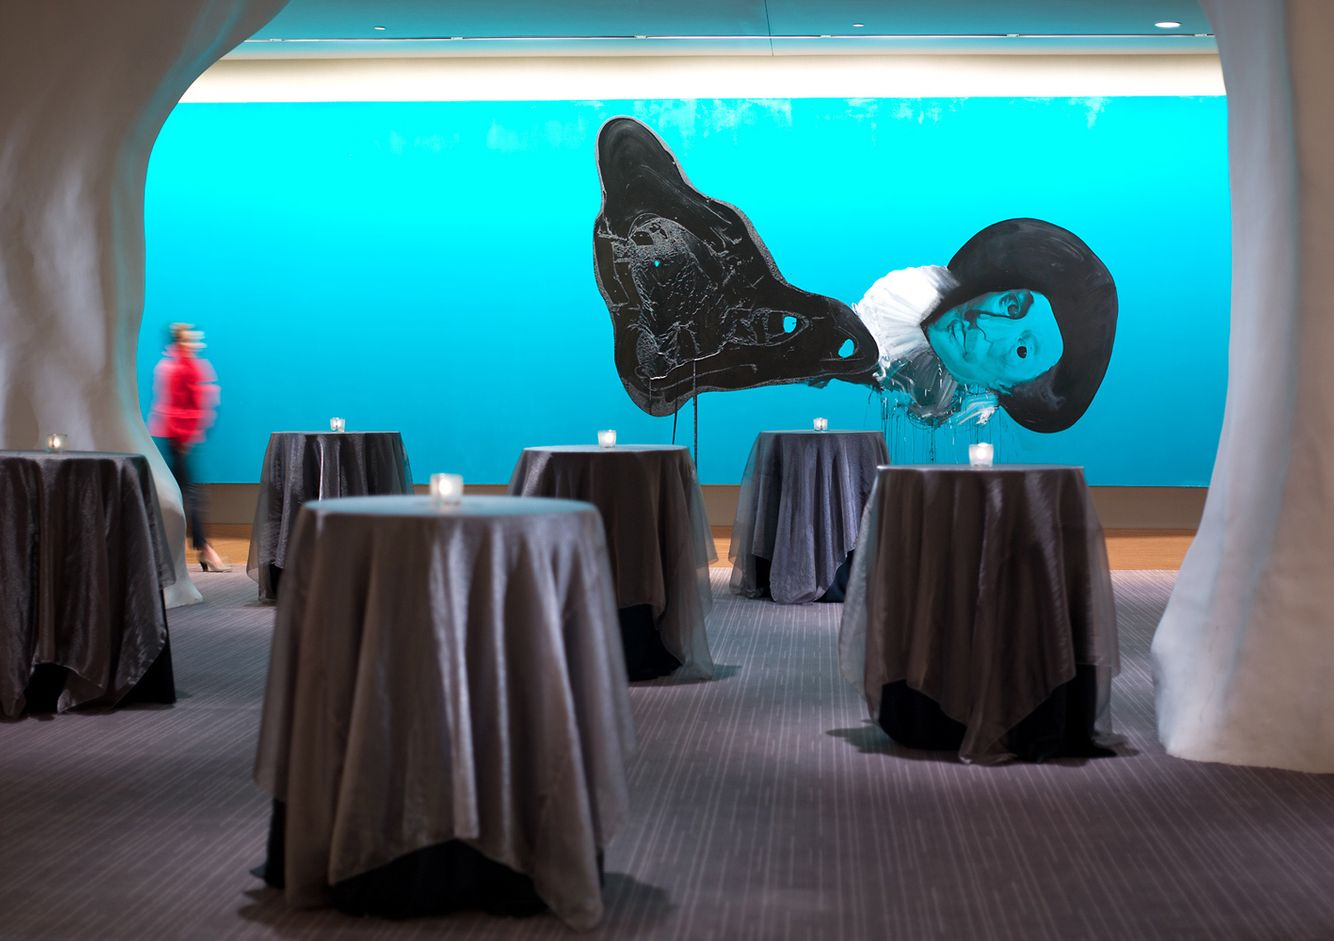 John-Sutton-Photography-InterContinential Hotel Pre-function Area